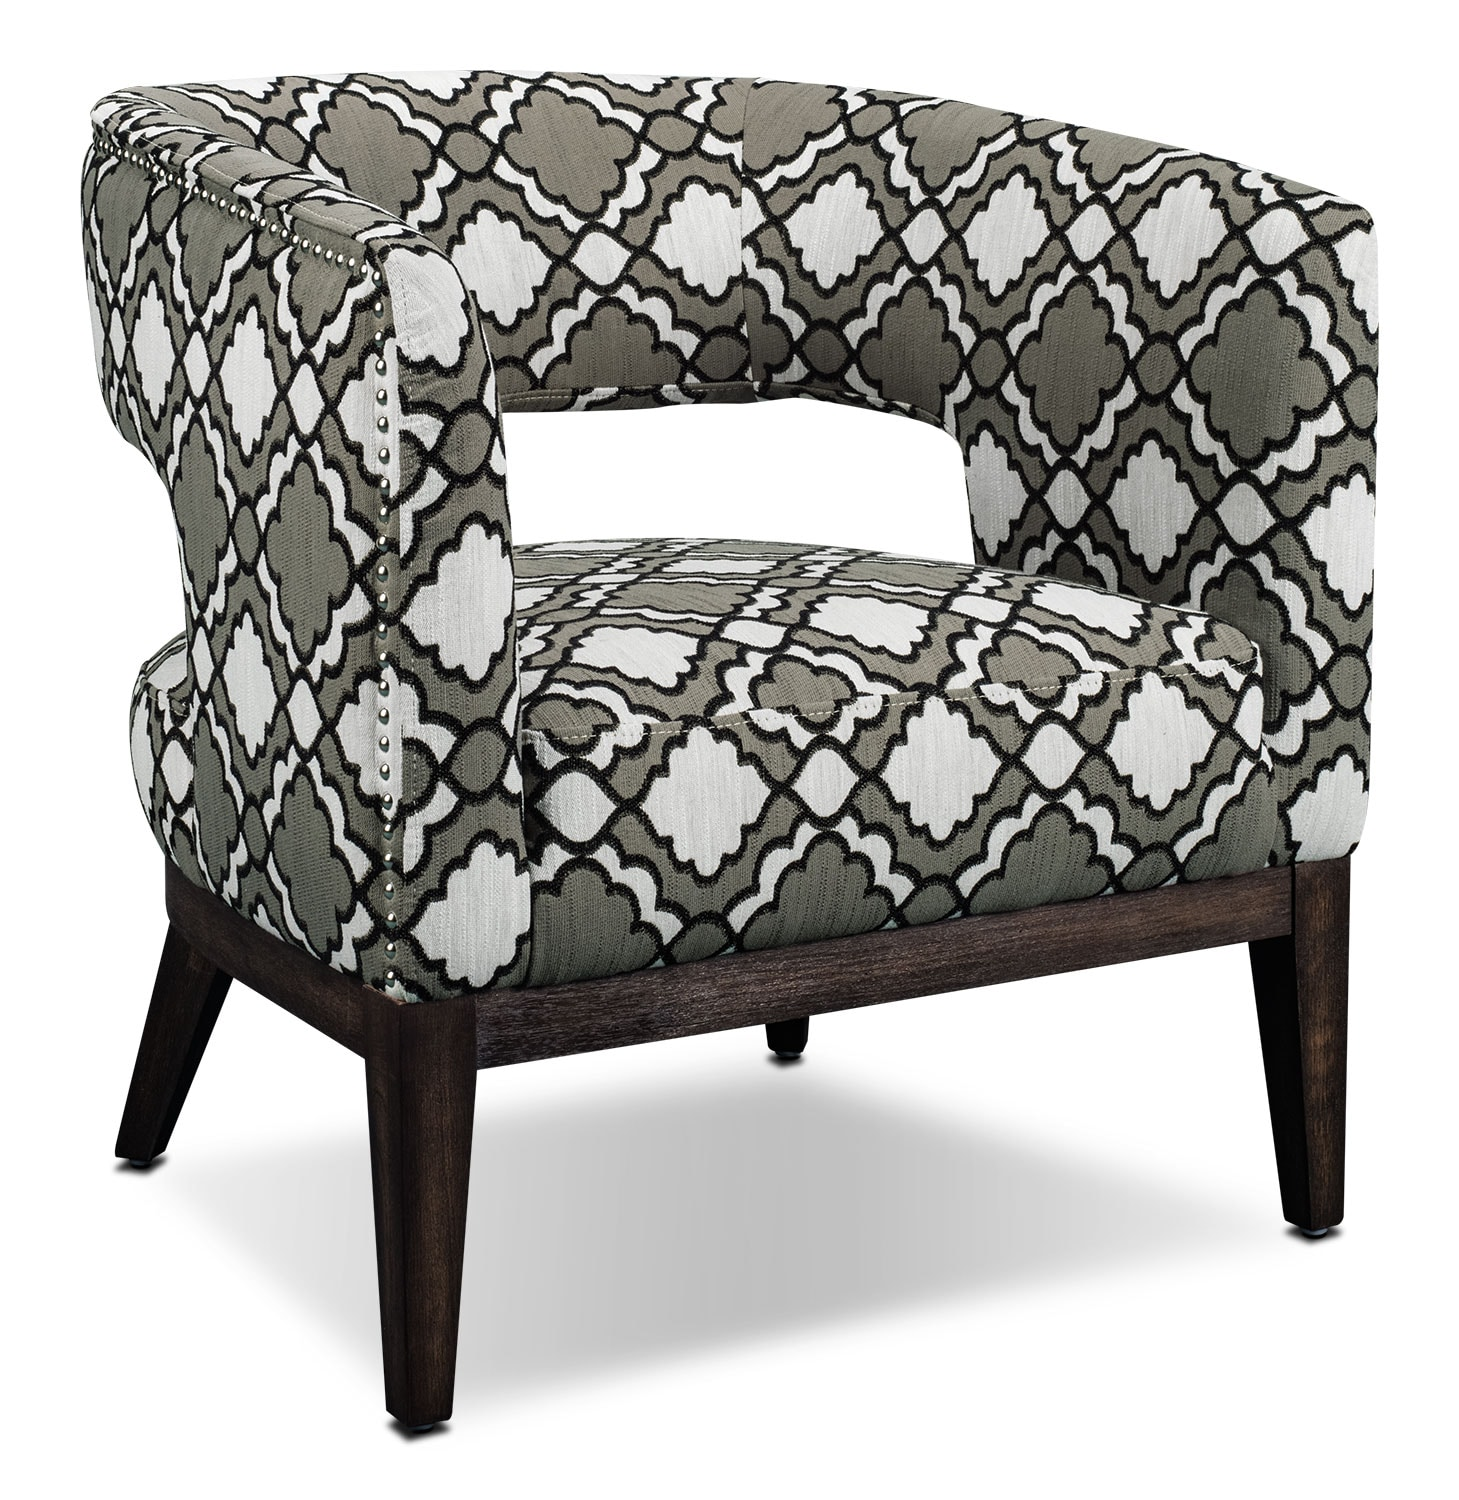 ... Accent Chair U2013 Patterned. Hover To Zoom